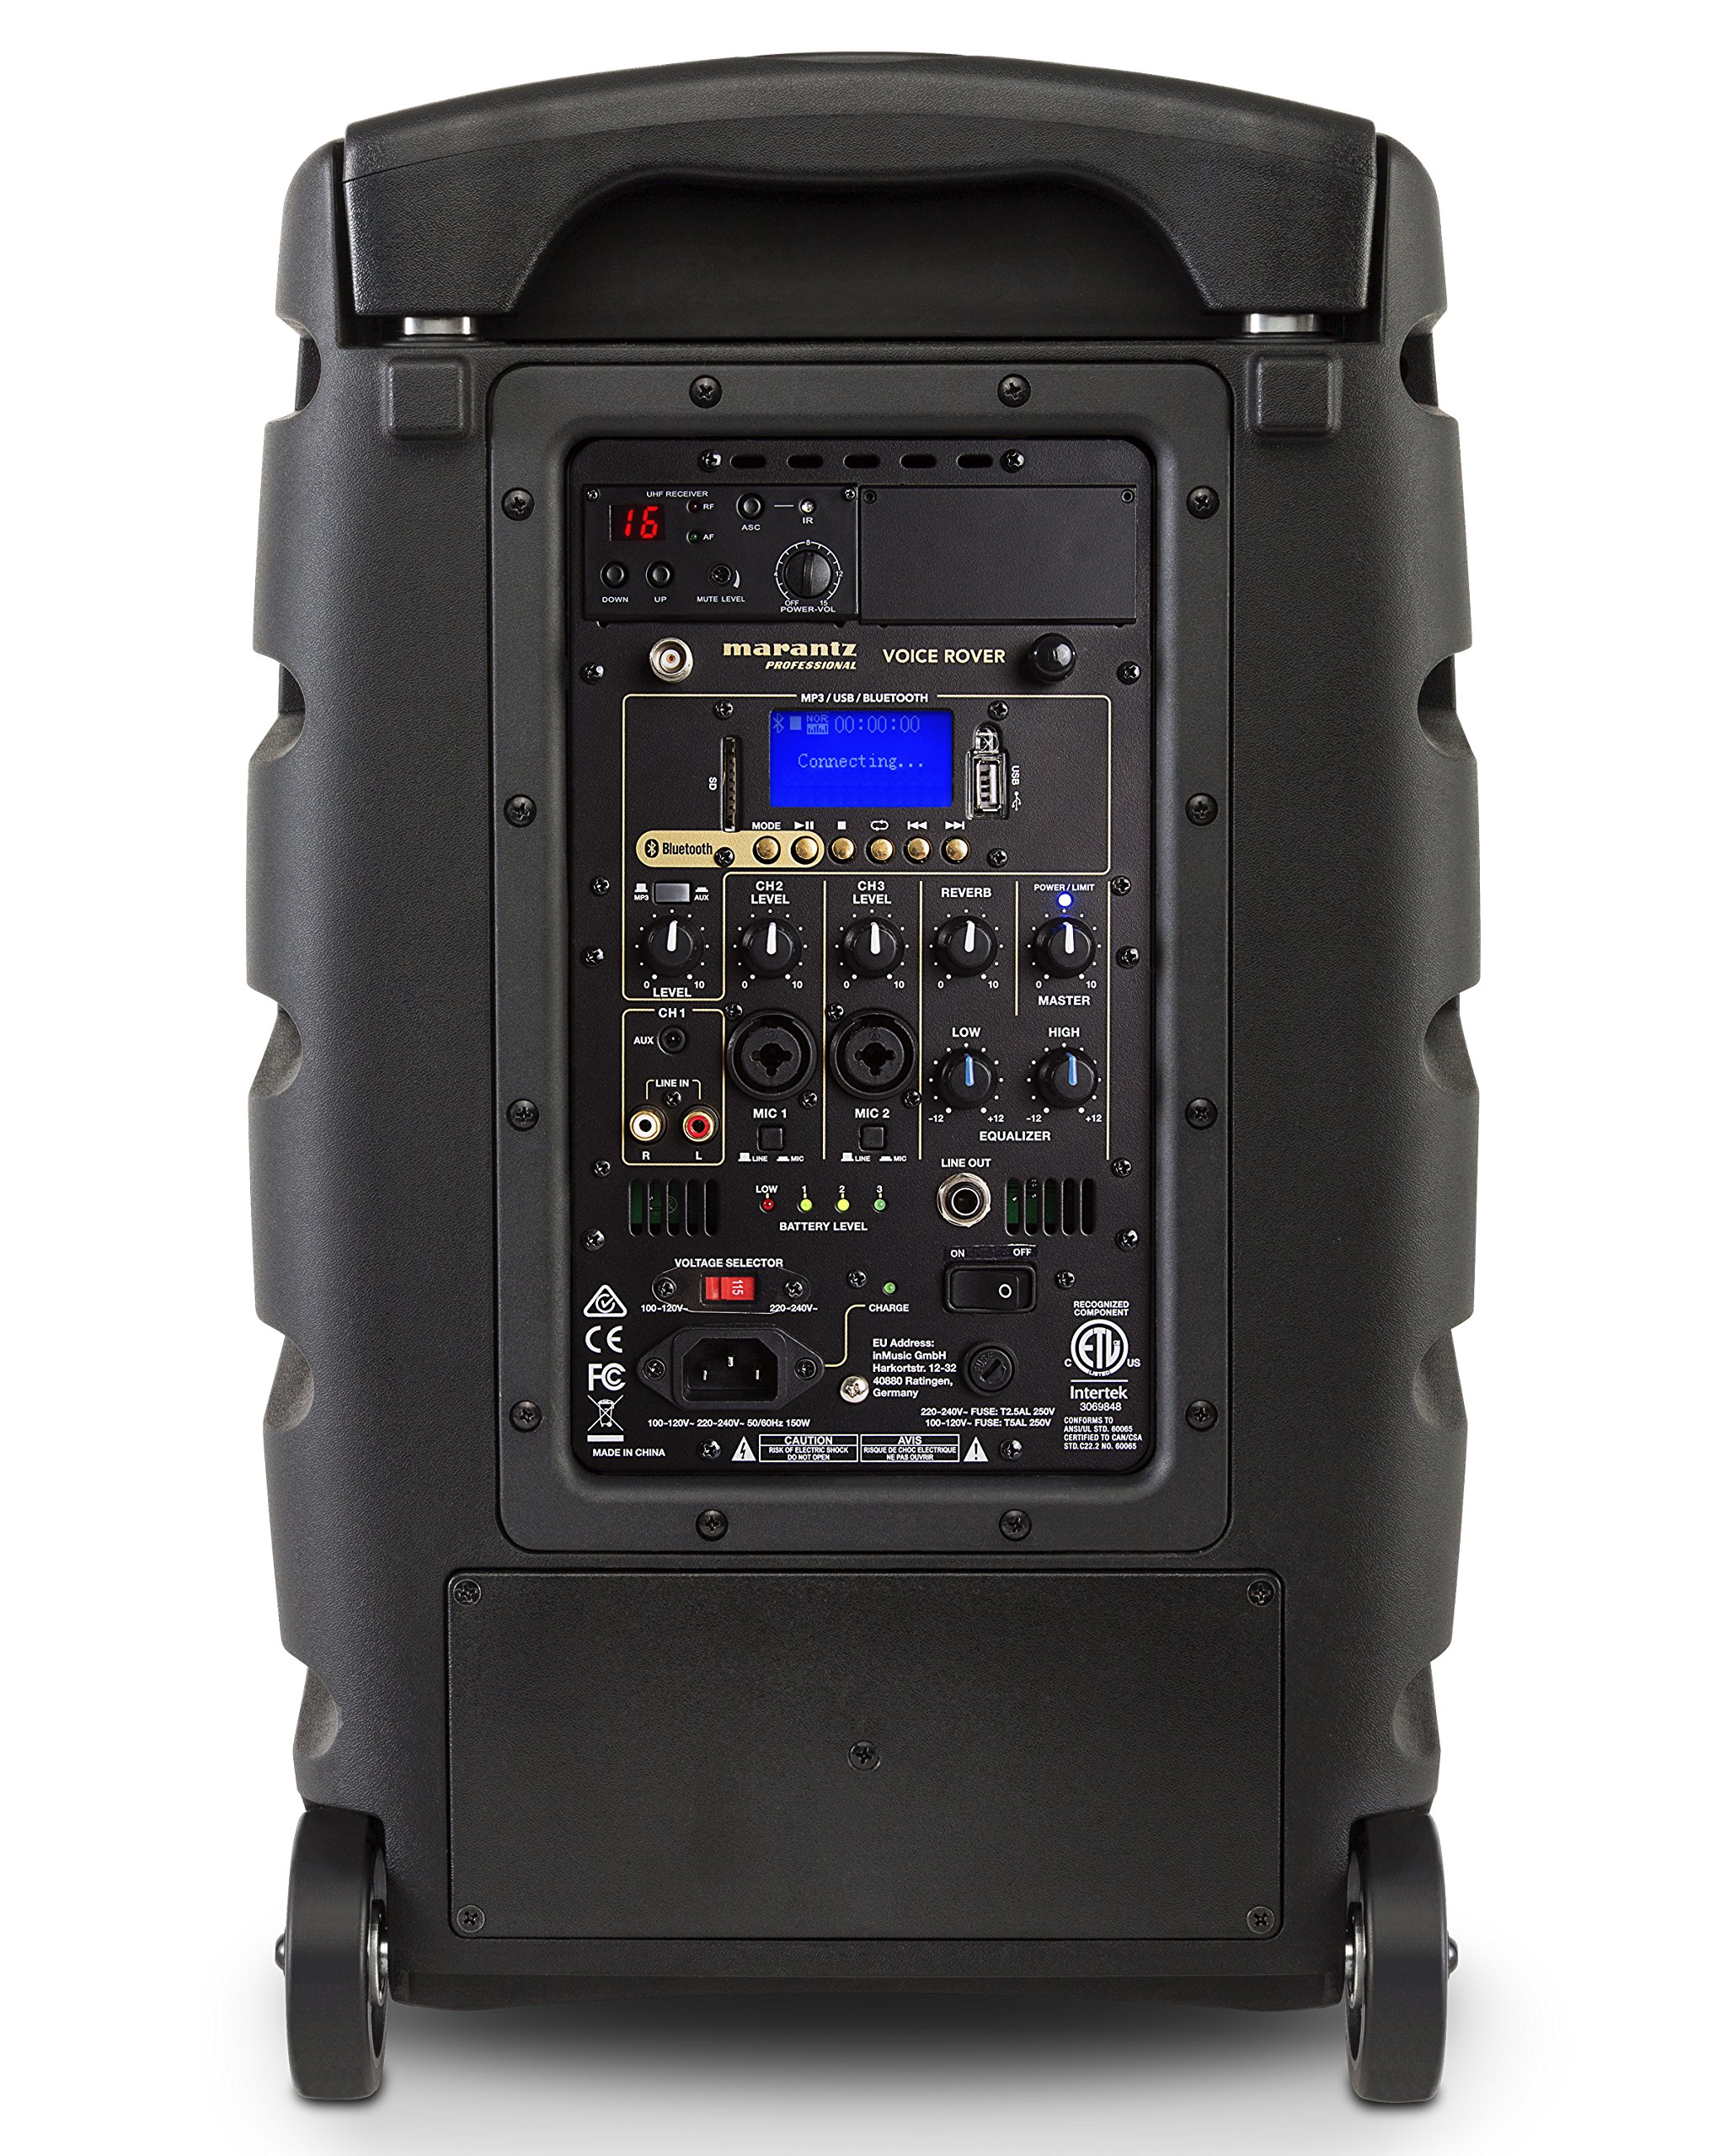 Marantz Professional Voice Rover | 10'' Portable AC/Battery-Powered PA System with Bluetooth and UHF Wireless Mic by Marantz Professional (Image #2)